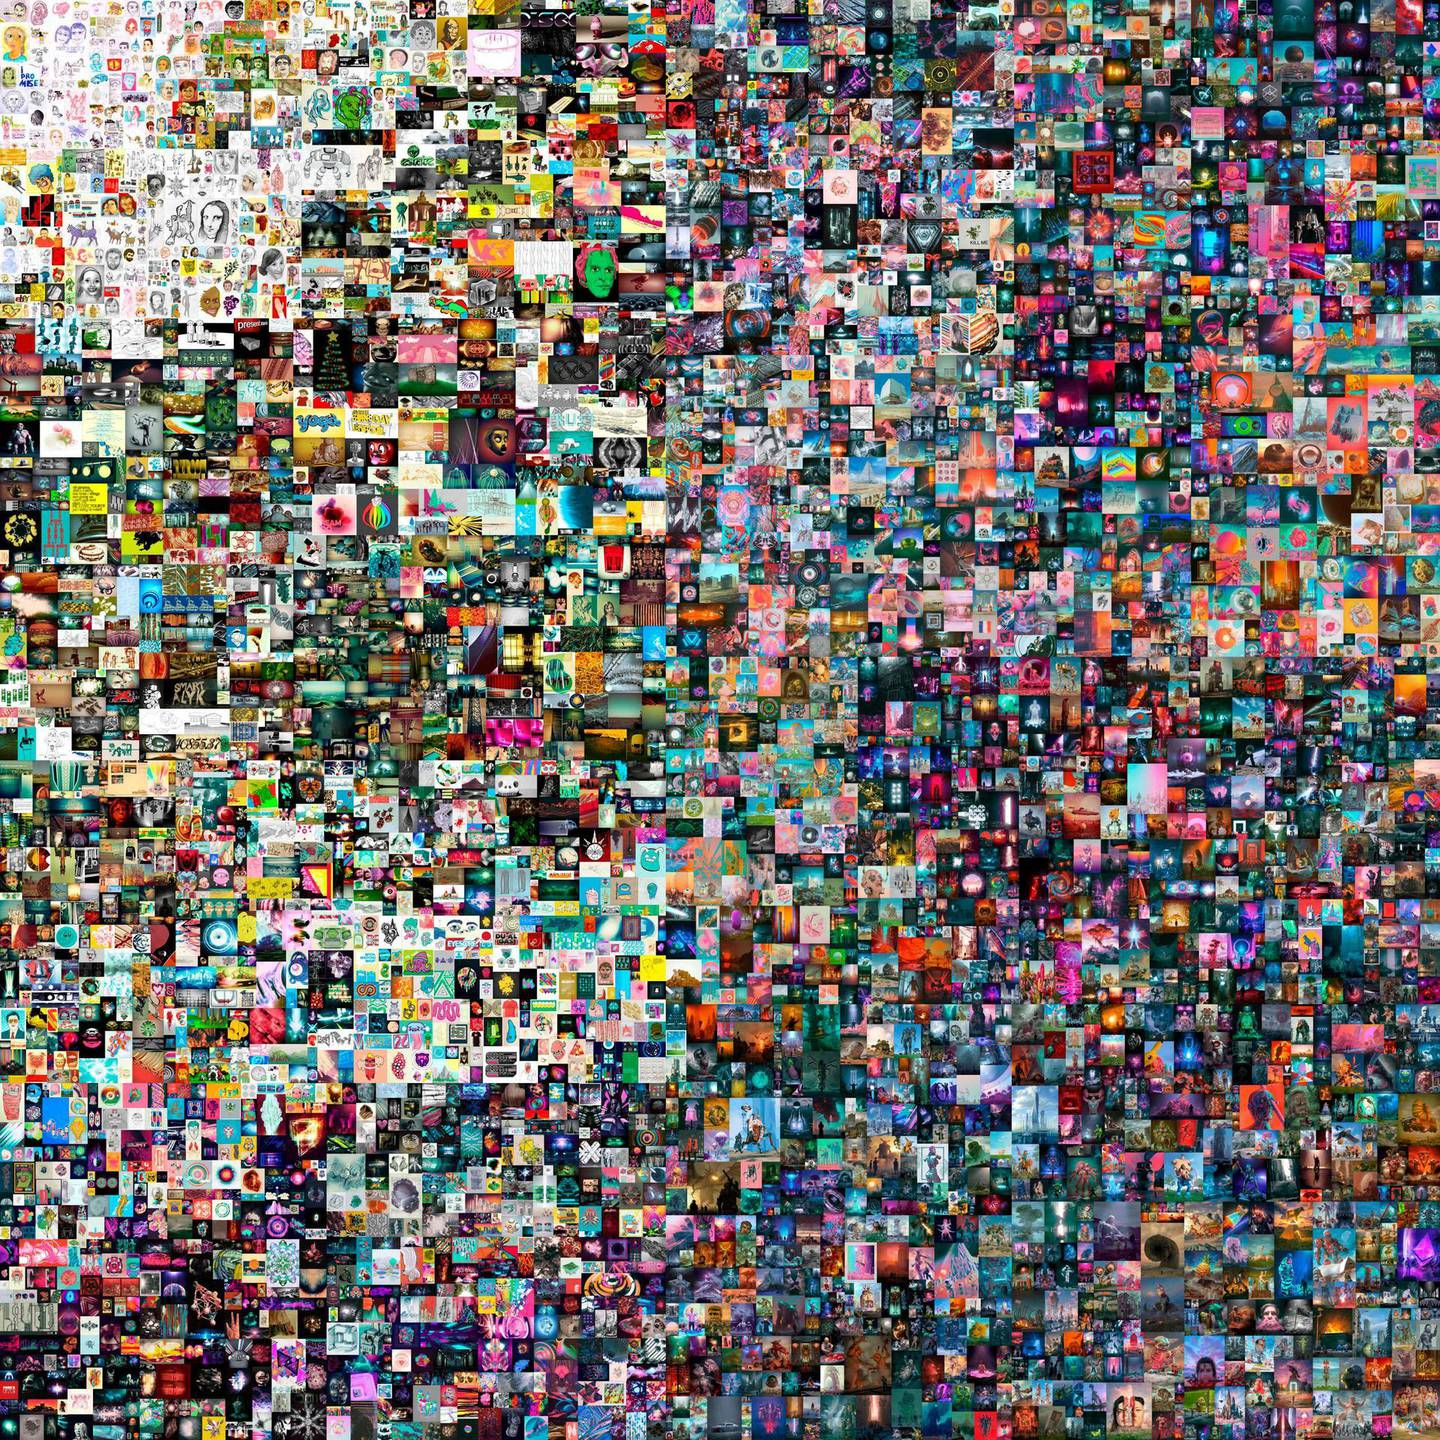 """CORRECTION / This undated handout image obtained March 10, 2021, courtesy of Christie's shows a digital art collage by Beeple, for sale in New York. The digital collage by the American artist Beeple, also known as Mike Winkelmann, a pioneer of the exploding virtual art market, sold for a record $69.3 million, Christie's announced on March 11, 2021. """"Everydays: The First 5,000 Days"""" is now the most expensive NFT -- non-fungible token, or collectible digital asset transformed using blockchain into something ownable -- ever sold. - RESTRICTED TO EDITORIAL USE - MANDATORY CREDIT """"AFP PHOTO /CHRISTIE'S AUCTION HOUSE/HANDOUT """" - NO MARKETING - NO ADVERTISING CAMPAIGNS - DISTRIBUTED AS A SERVICE TO CLIENTS  / AFP / CHRISTIE'S AUCTION HOUSE / Handout / RESTRICTED TO EDITORIAL USE - MANDATORY CREDIT """"AFP PHOTO /CHRISTIE'S AUCTION HOUSE/HANDOUT """" - NO MARKETING - NO ADVERTISING CAMPAIGNS - DISTRIBUTED AS A SERVICE TO CLIENTS"""